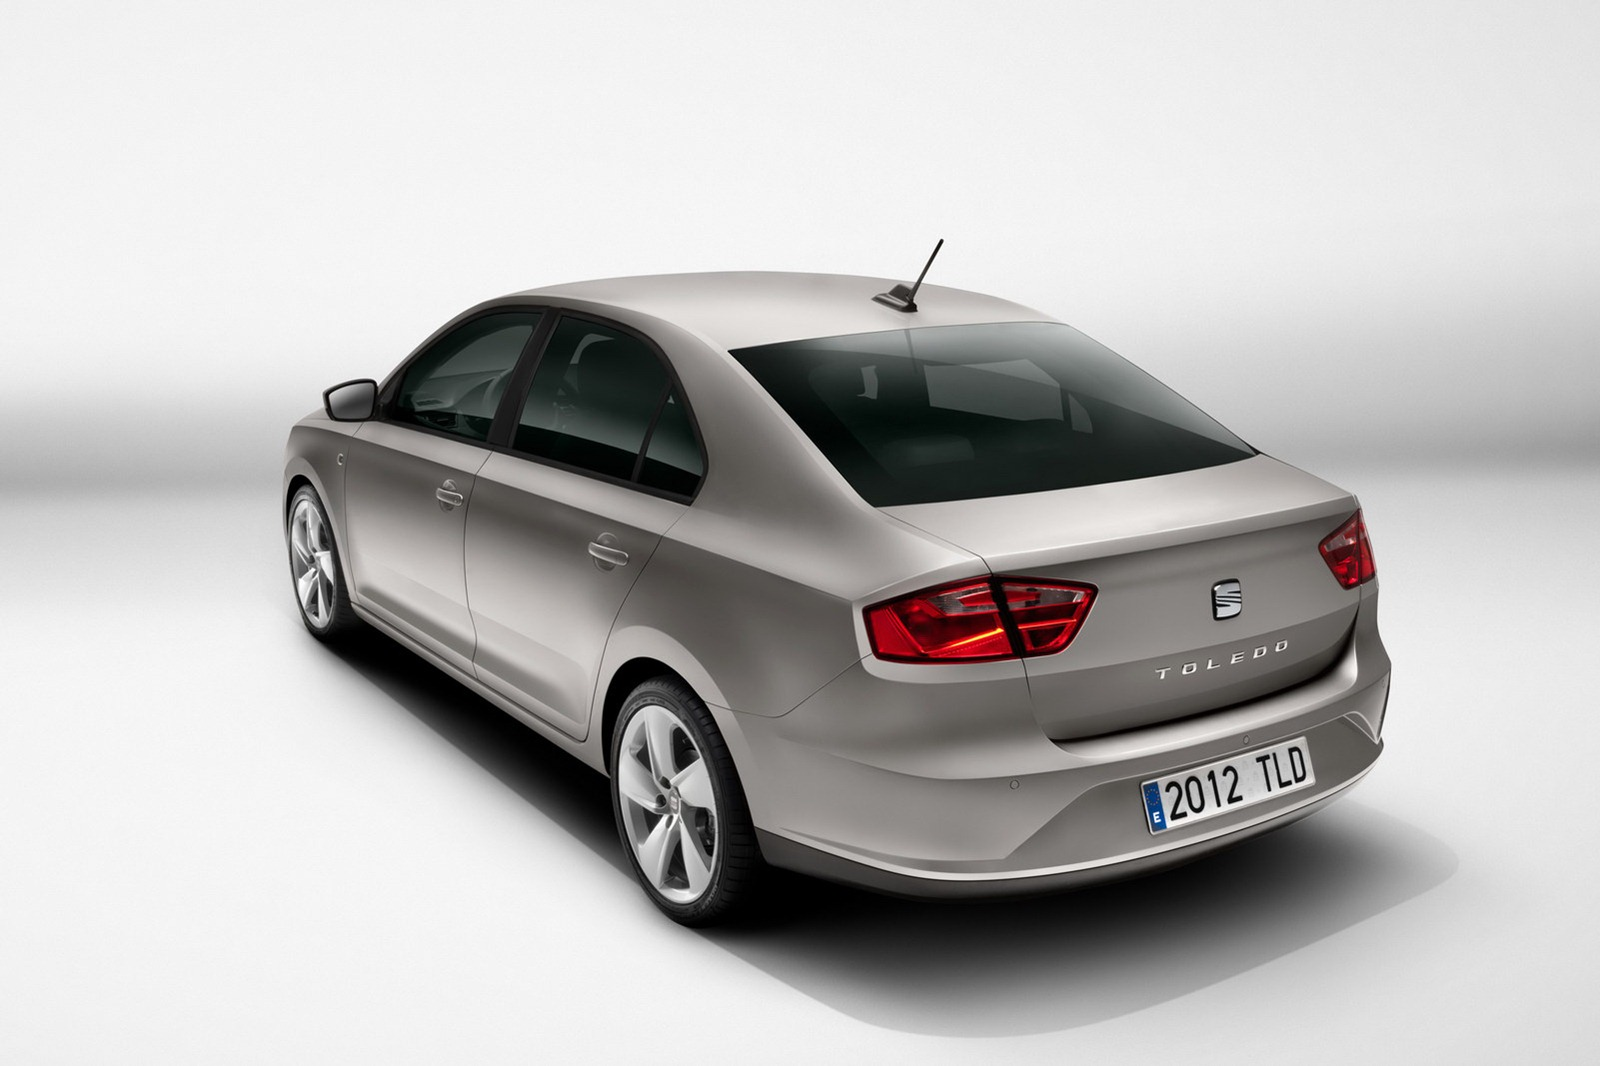 2013 Seat Toledo Compact Sedan 3 2013 Seat Toledo MK 4 with Sophisticated Power train Kit